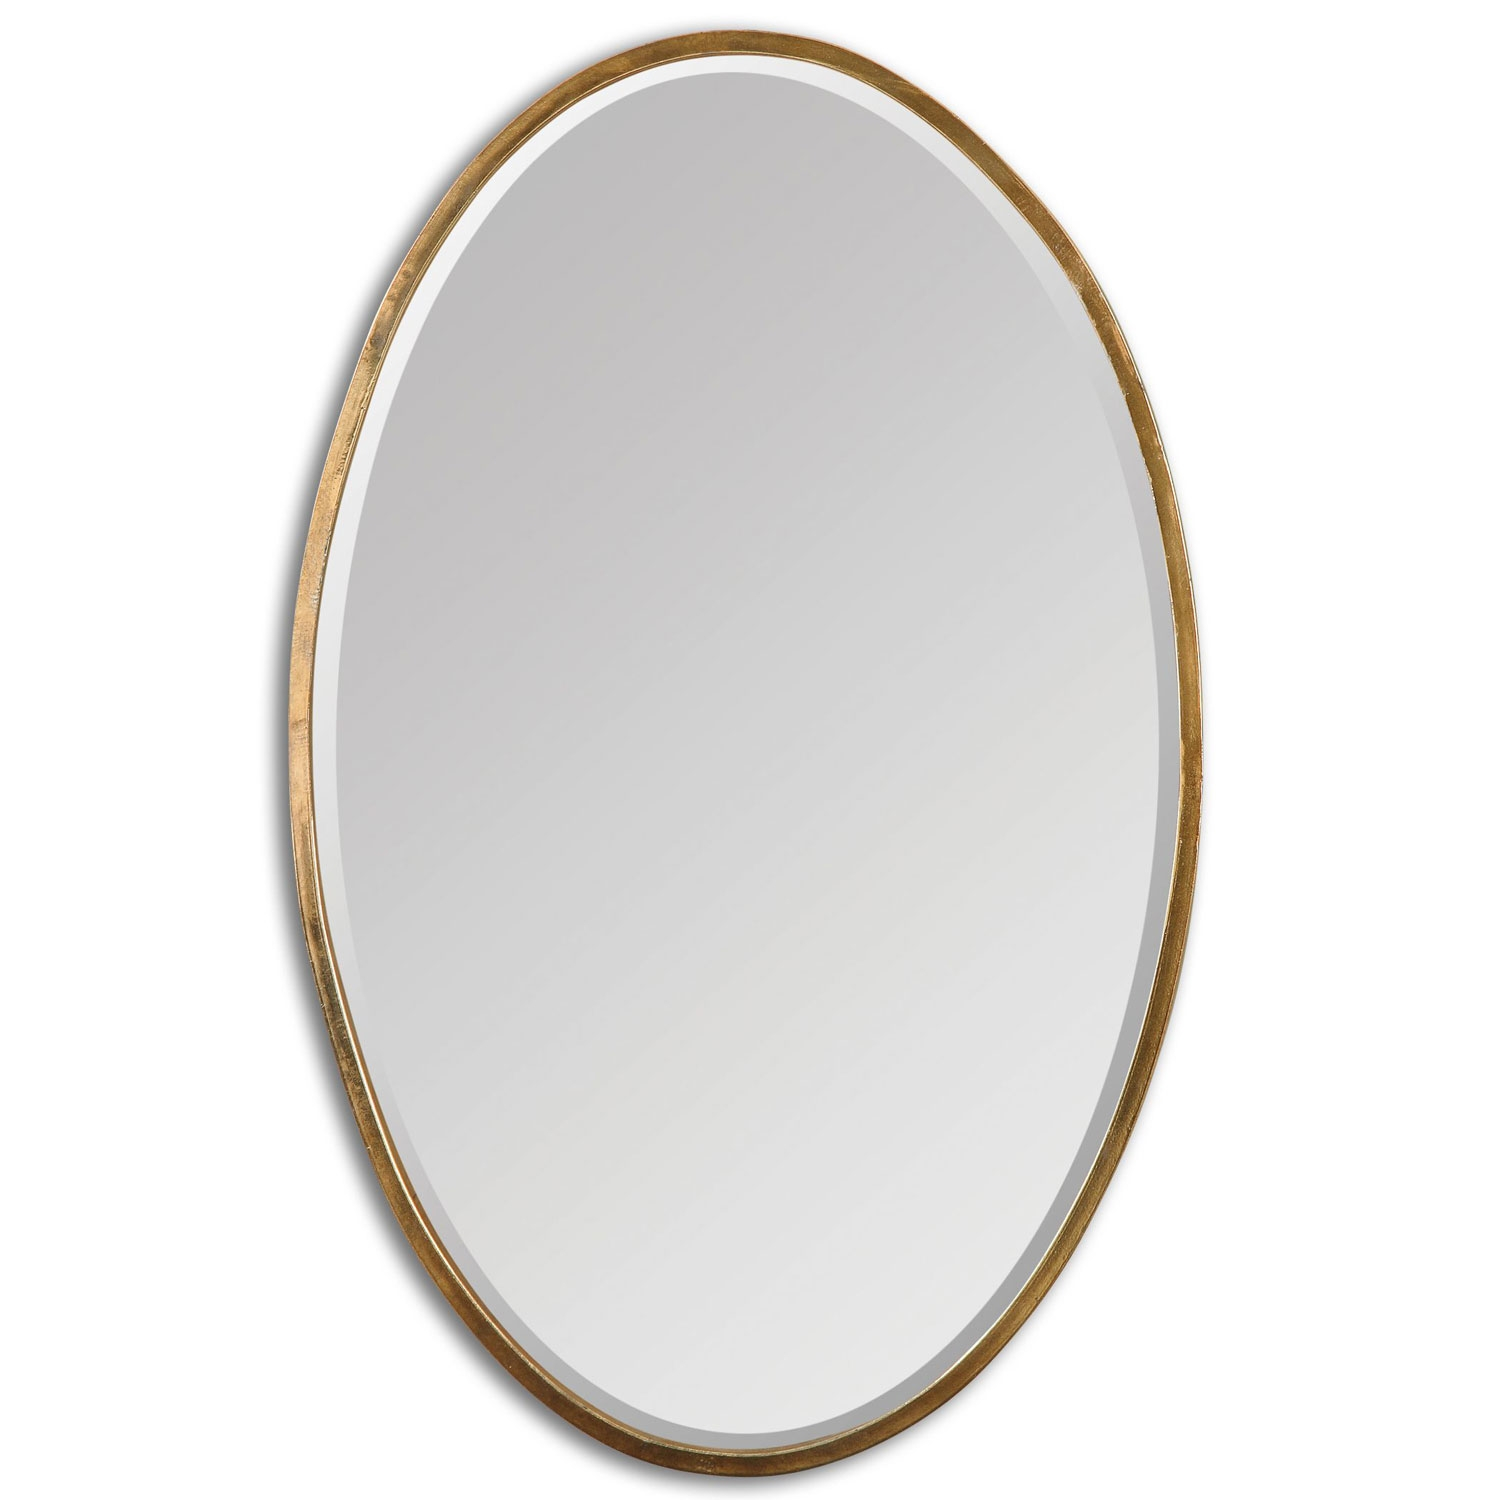 Oval Wall Mirrors 270 Kitchen Bathroom Frameless Vanity Options Intended For Long Oval Mirror (Image 12 of 15)